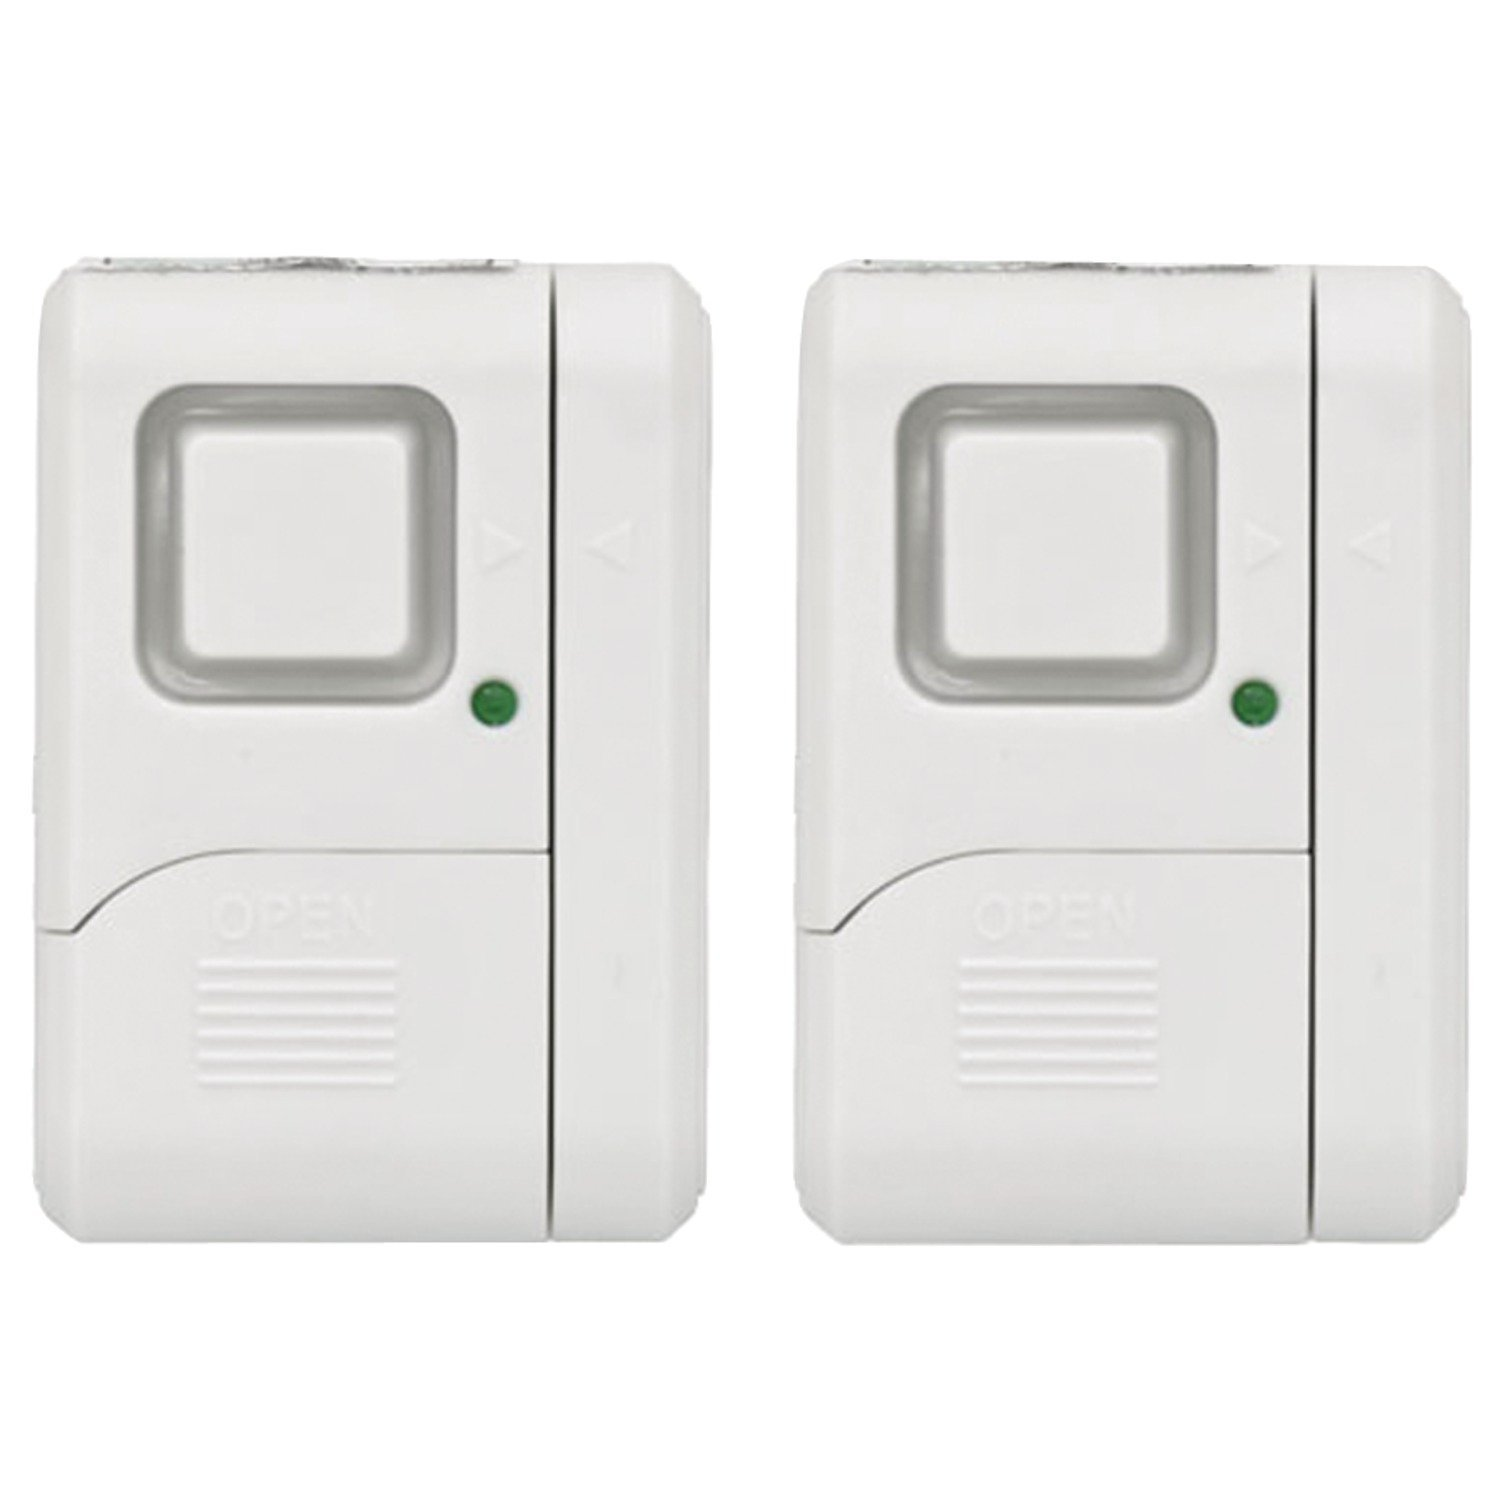 GE Personal Security Sensors & Alarms